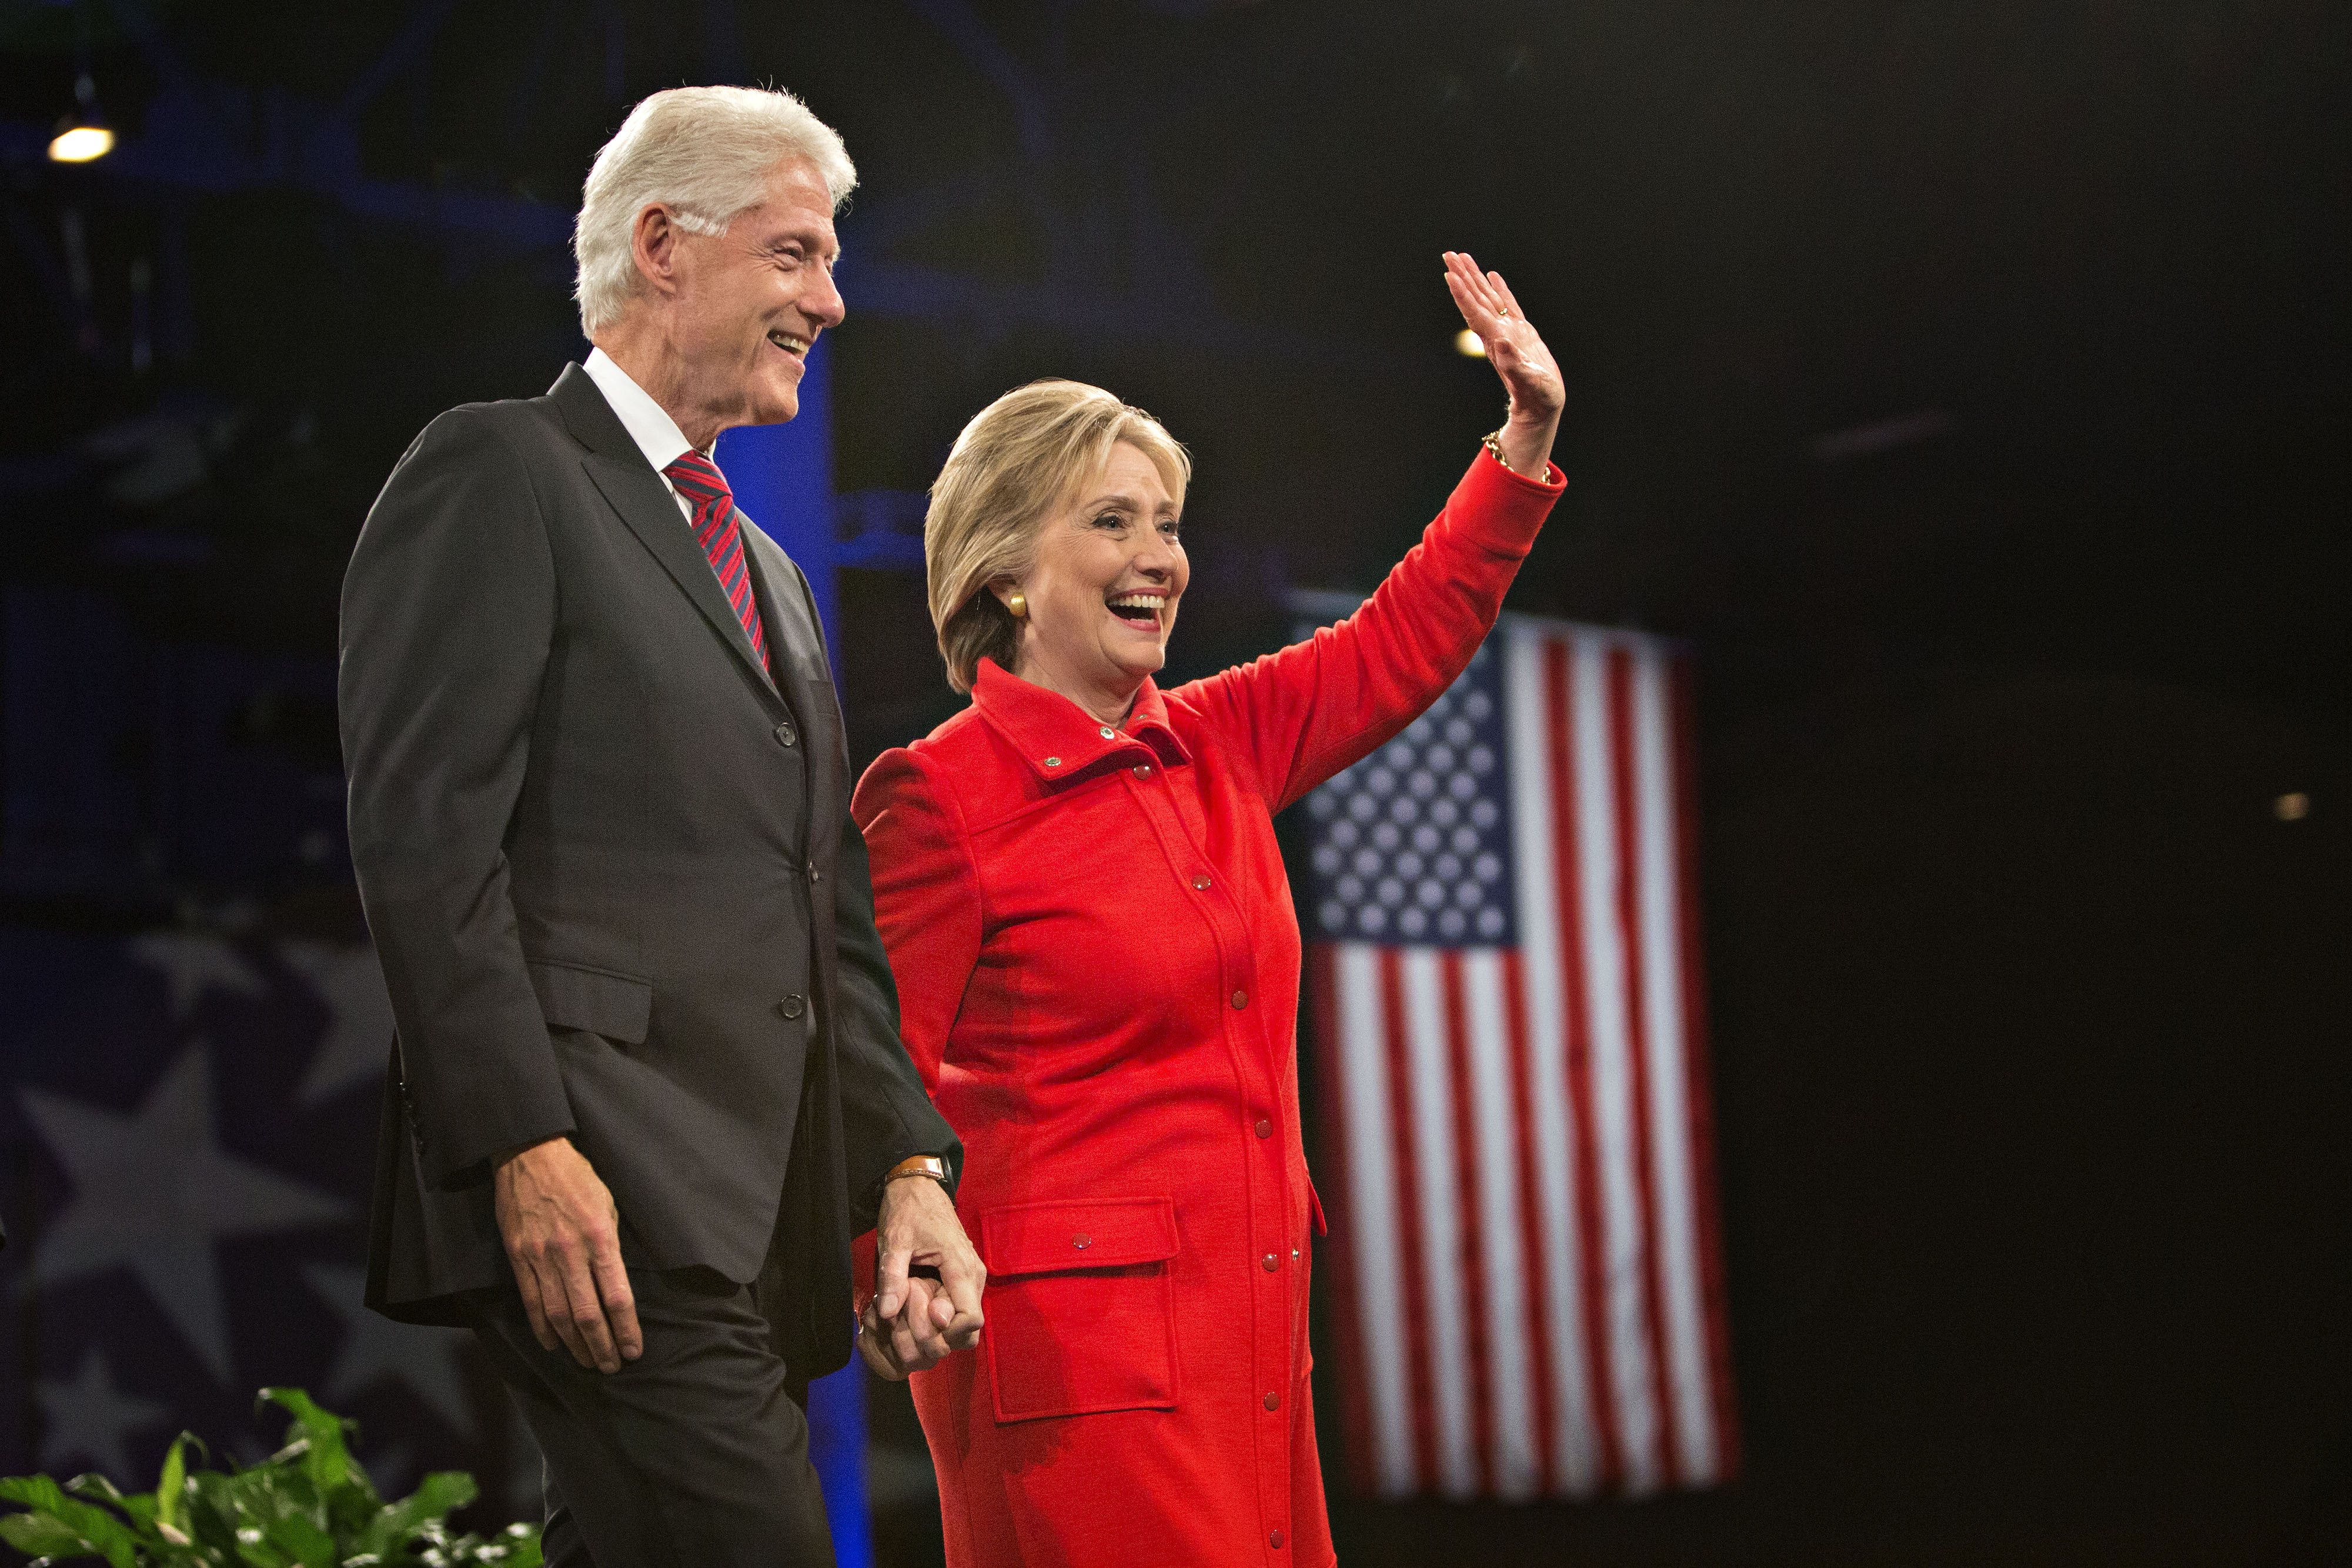 Hillary Clinton, former U.S. secretary of state and 2016 Democratic presidential candidate, right, stands on stage with husband Bill Clinton, former U.S. president, at the conclusion of the Jefferson-Jackson Dinner in Des Moines, Iowa, U.S., on Oct. 24, 2015.